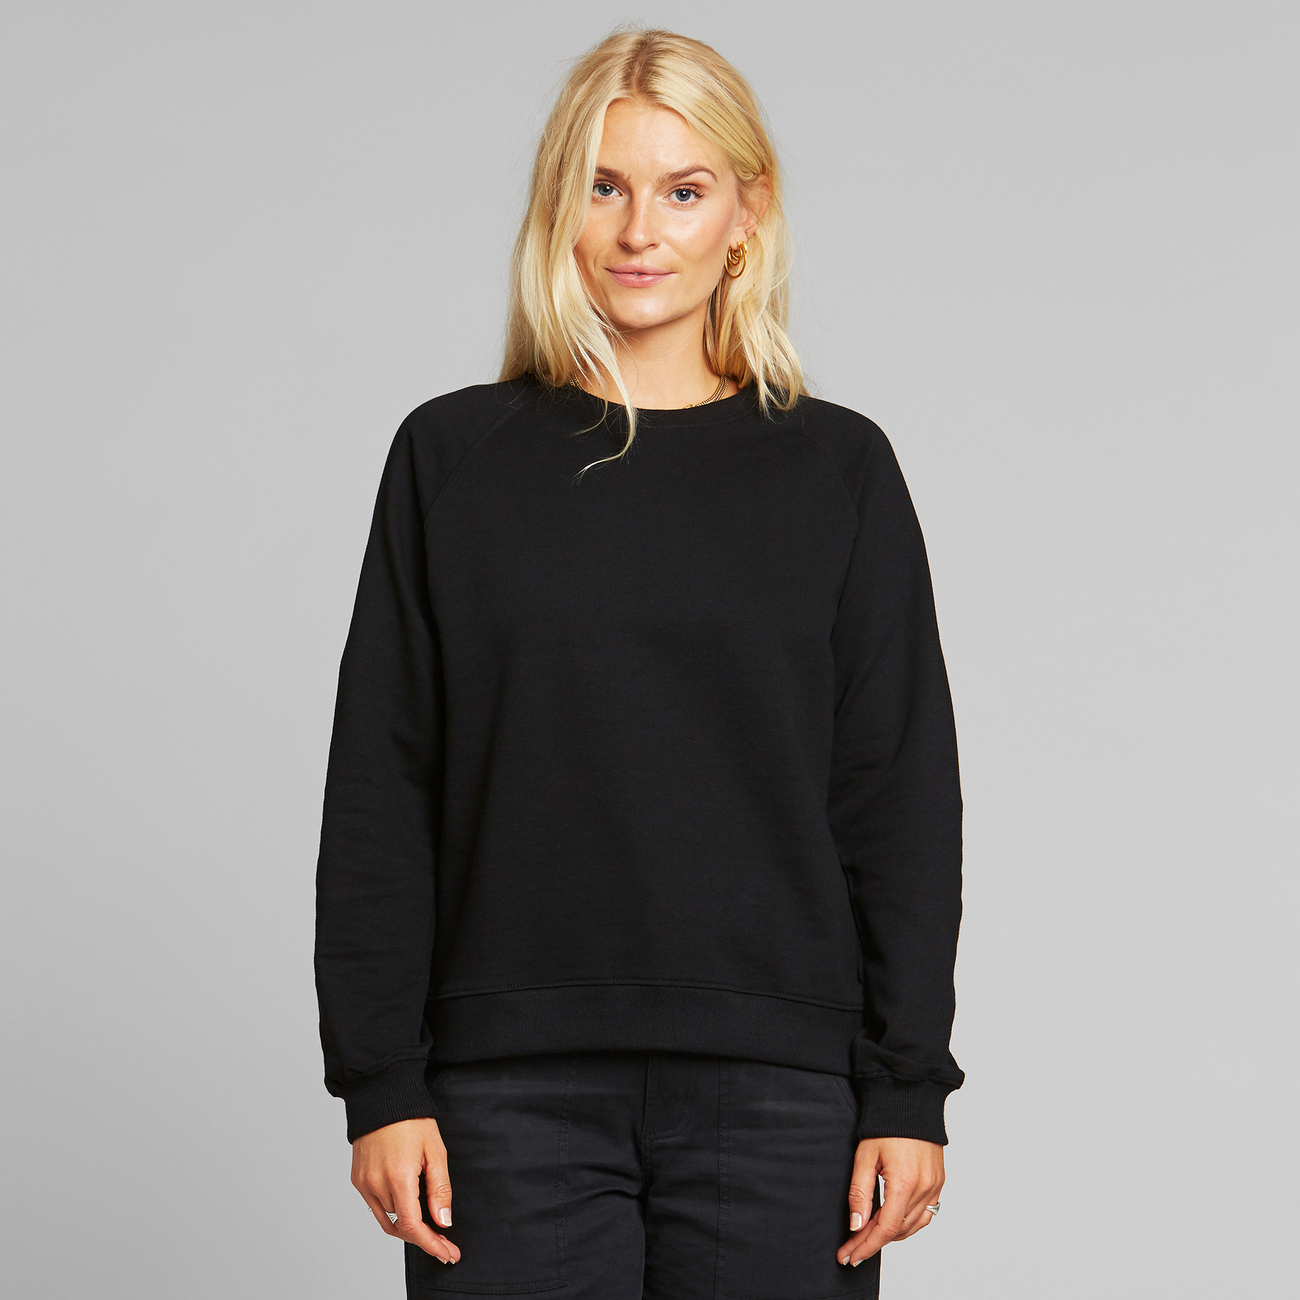 Sweatshirt Ystad Raglan Base Black